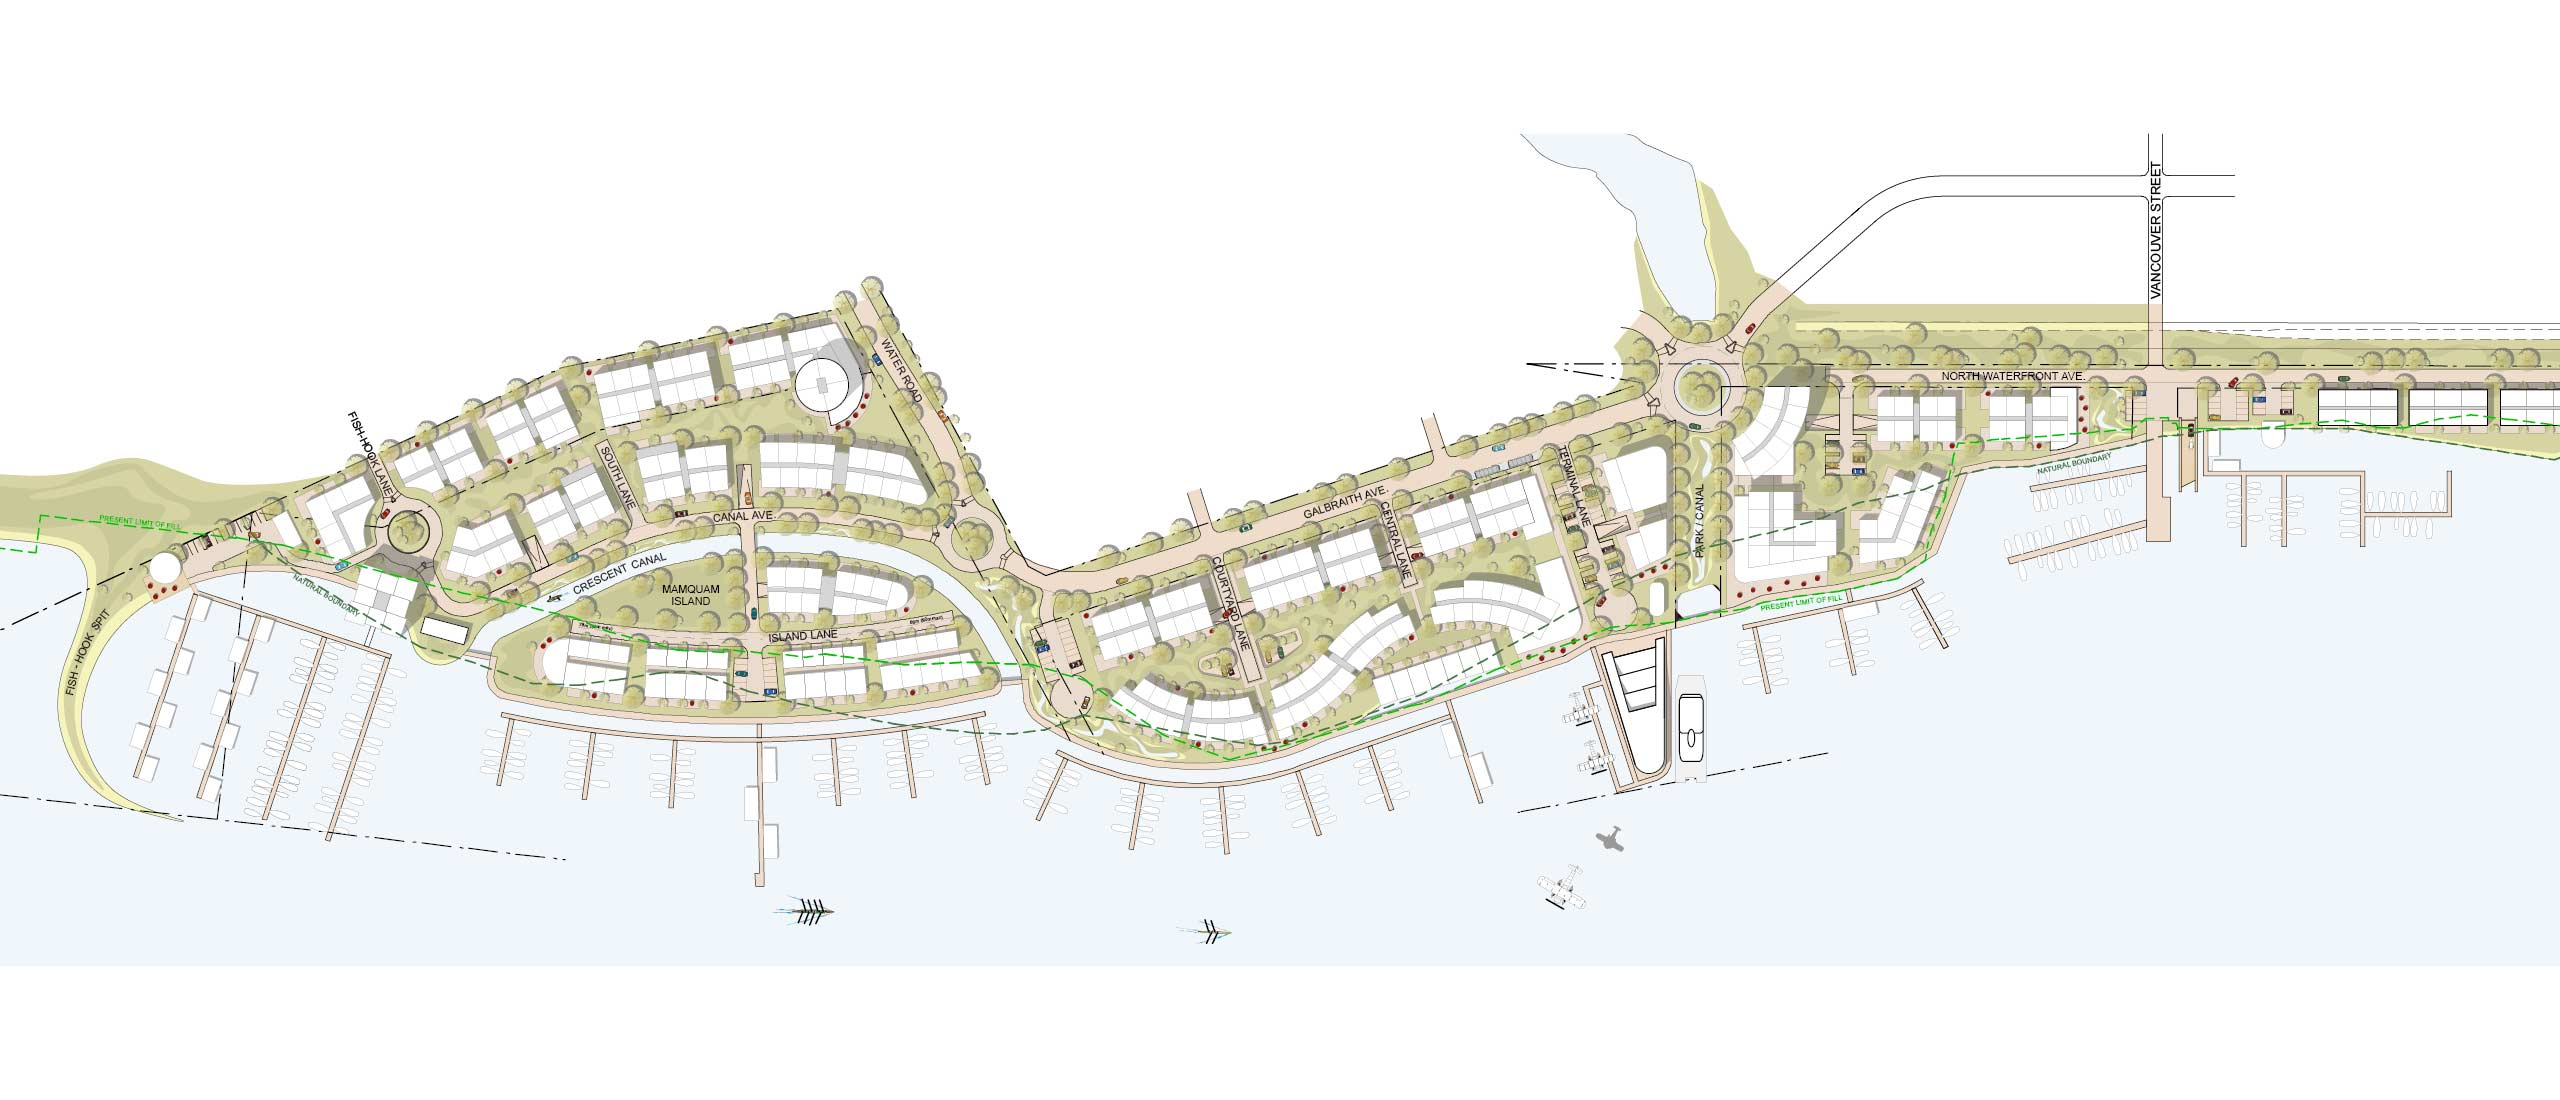 Fine Squamish Waterfront Plan Dambrosio Architecture Urbanism Largest Home Design Picture Inspirations Pitcheantrous